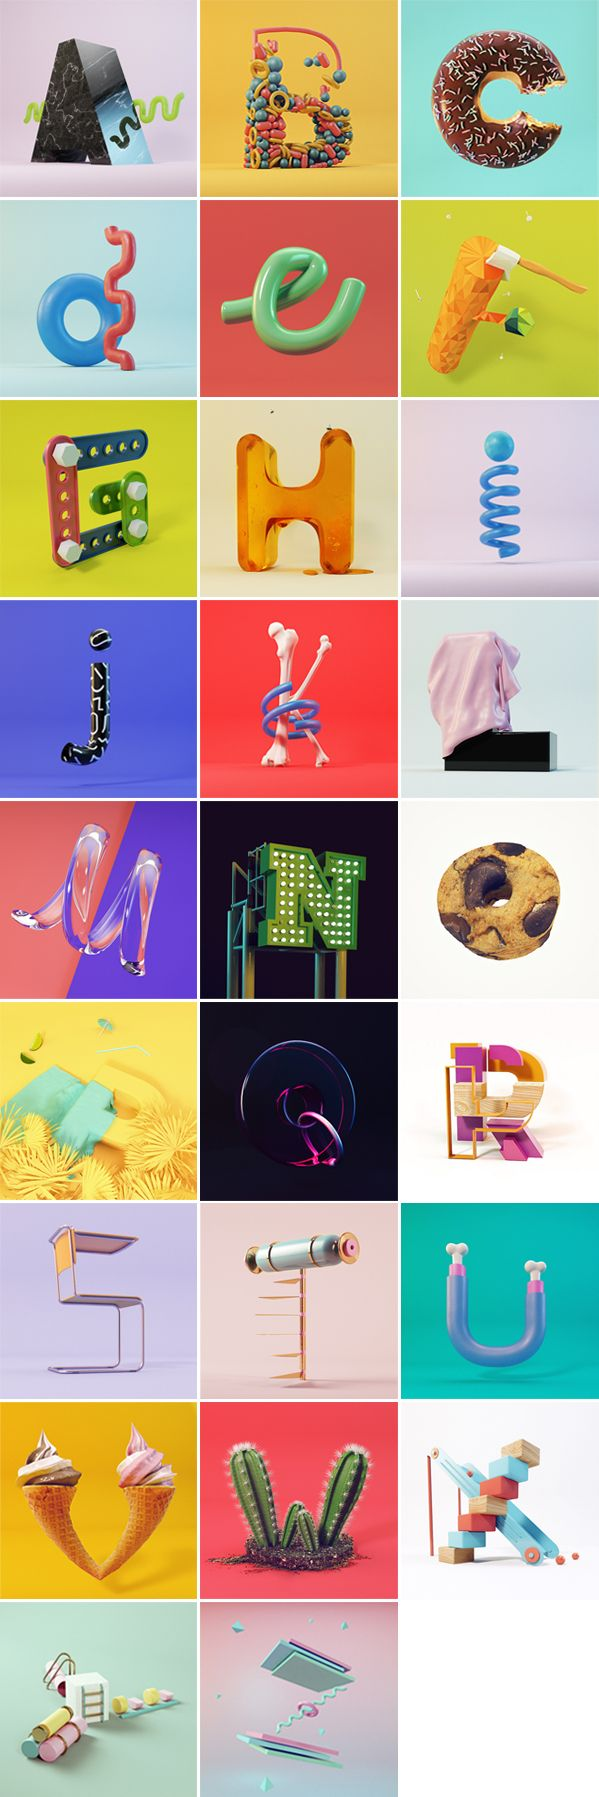 Alphabet 36 Days of type on Behance